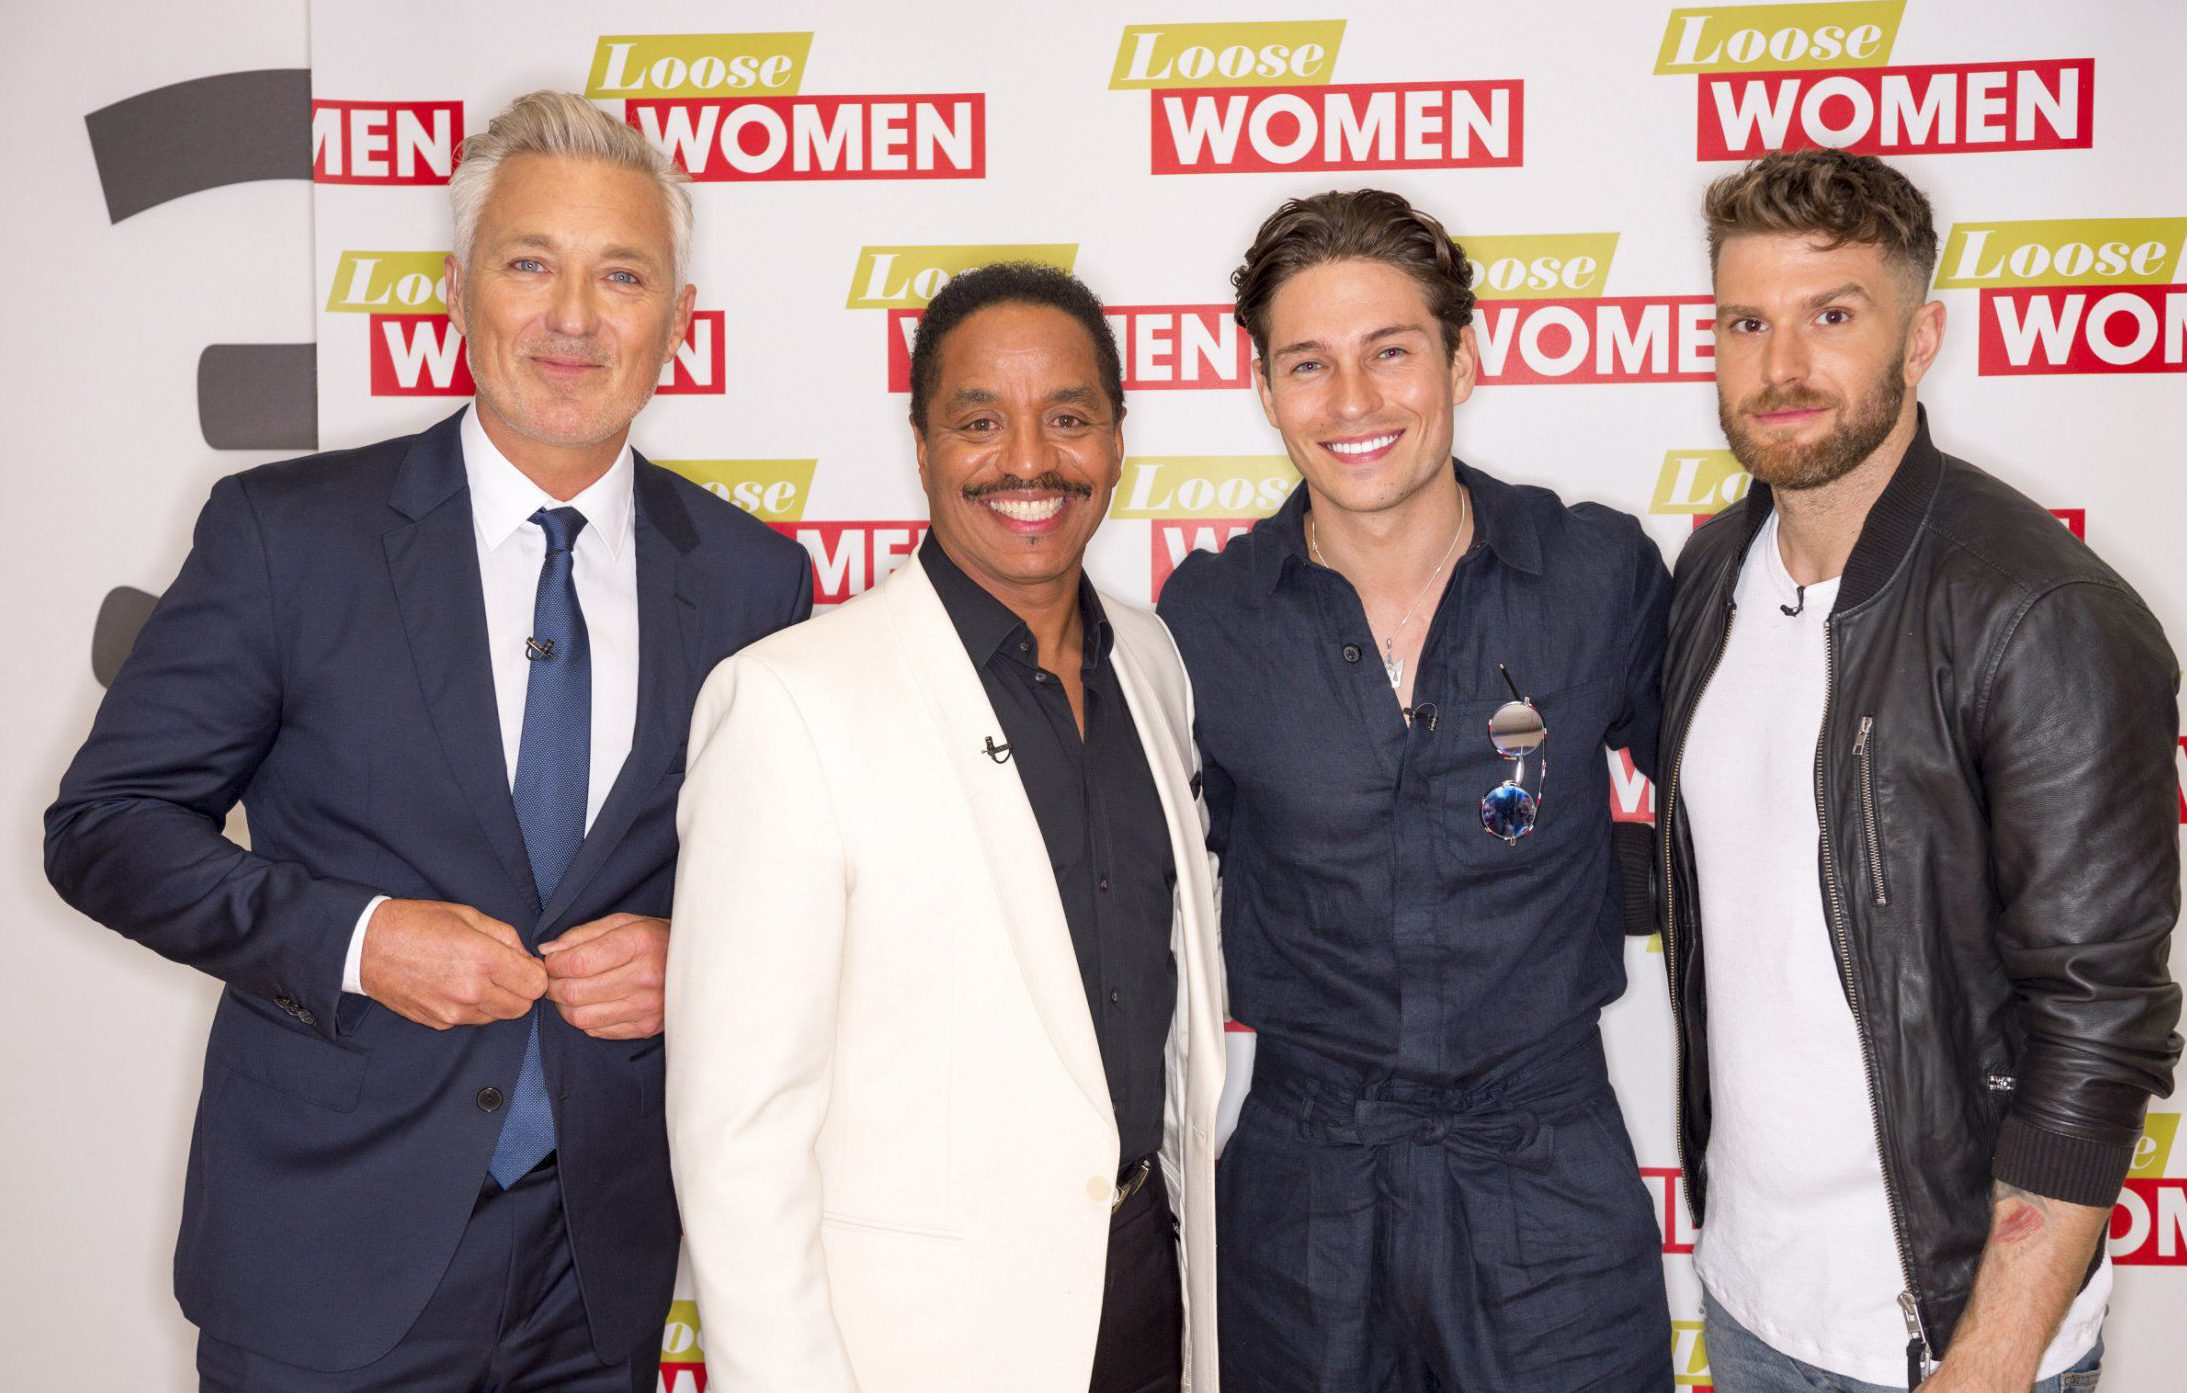 EDITORIAL USE ONLY. NO MERCHANDISING - EMBARGOED UNTIL 00.01 26th August 2017 UK TIME Mandatory Credit: Photo by Ken McKay/ITV/REX/Shutterstock (9026644ed) Martin Kemp, Marlon Jackson, Joey Essex and Joel Dommett 'Loose Women' TV show, London, UK - 28 Aug 2017 Loose Women & Mens extended Bank Holiday special gets lively as the male guests complete challenges in order to avoid some awkward confessions. Martin Kemp joins the show with Joel Dommett, Marlon Jackson and Joey Essex alongside Andrea McLean, Nadia Sawalha, Stacey Solomon and Katie Price. In a revamped version of truth or dare, entitled Roll the Dice or Pay the Price, Joey is asked to reveal who he fancied most from previous dates: Stephanie Pratt, Amy Willerton and Sam Faiers. A squirming Joey chooses a dare instead, in which he must pie the most annoying panellist of the day. The cheeky TV star opts for a shell-shocked Andrea who is quick to pie him back. Plus, Martin volunteers to down a glass of pureed fish rather than admit to how many women he bedded during his early days in the band. Meanwhile, Stacey discusses boyfriend Joe Swashs abilities in the bedroom and Katie admitting she regrets missing out on wild single nights out. The men discuss mental health issues and whether therapy is a good idea